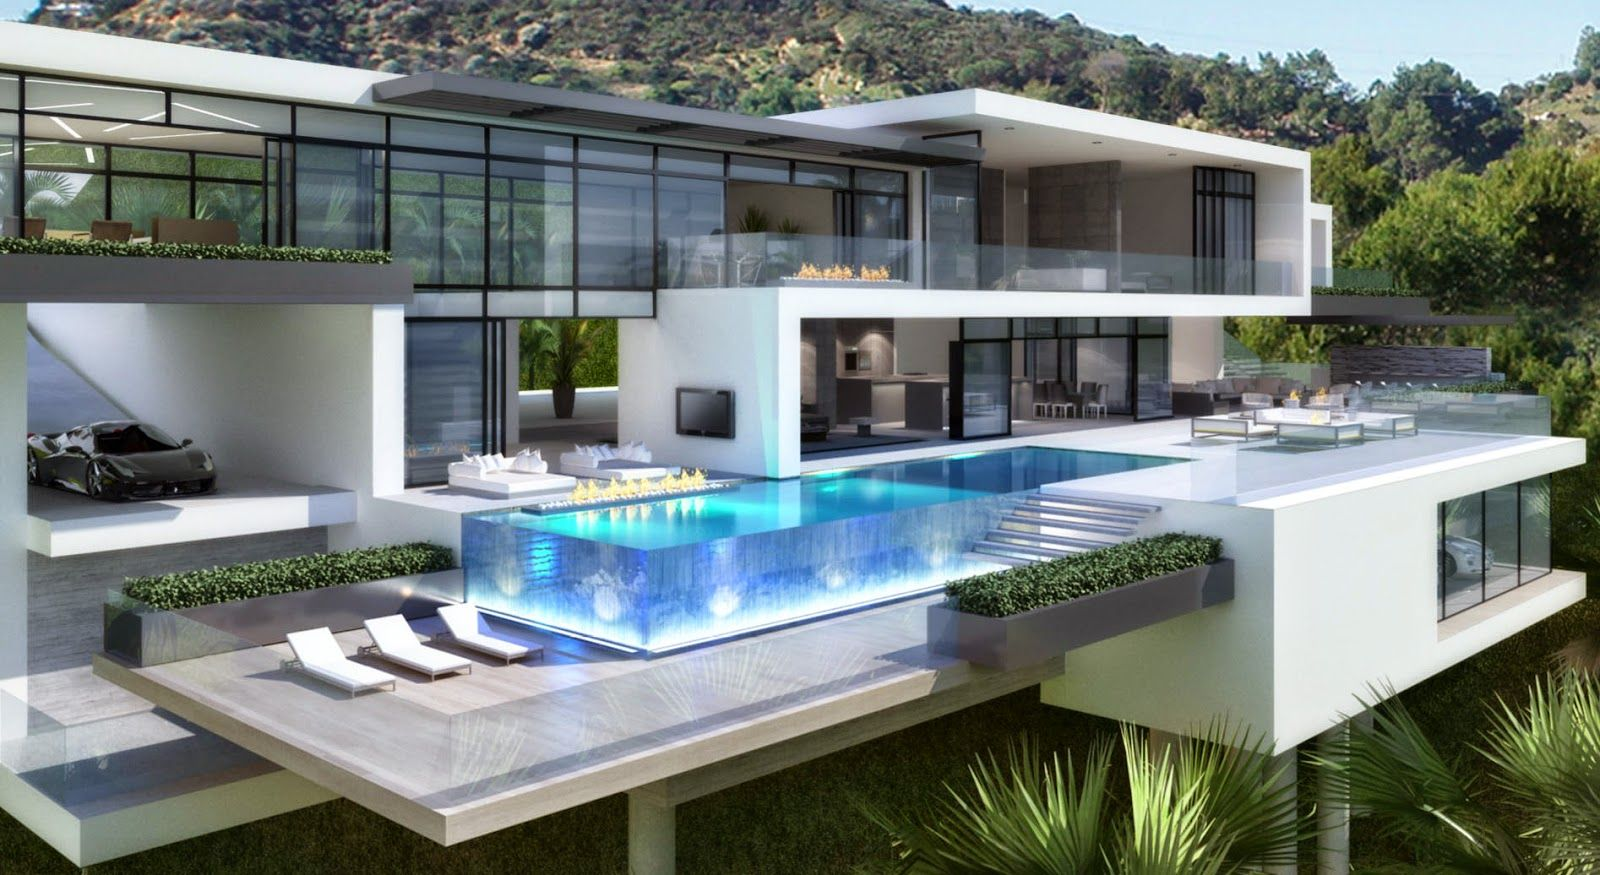 Fancy houses mansions beautiful fancy houses mansions beautiful big modern